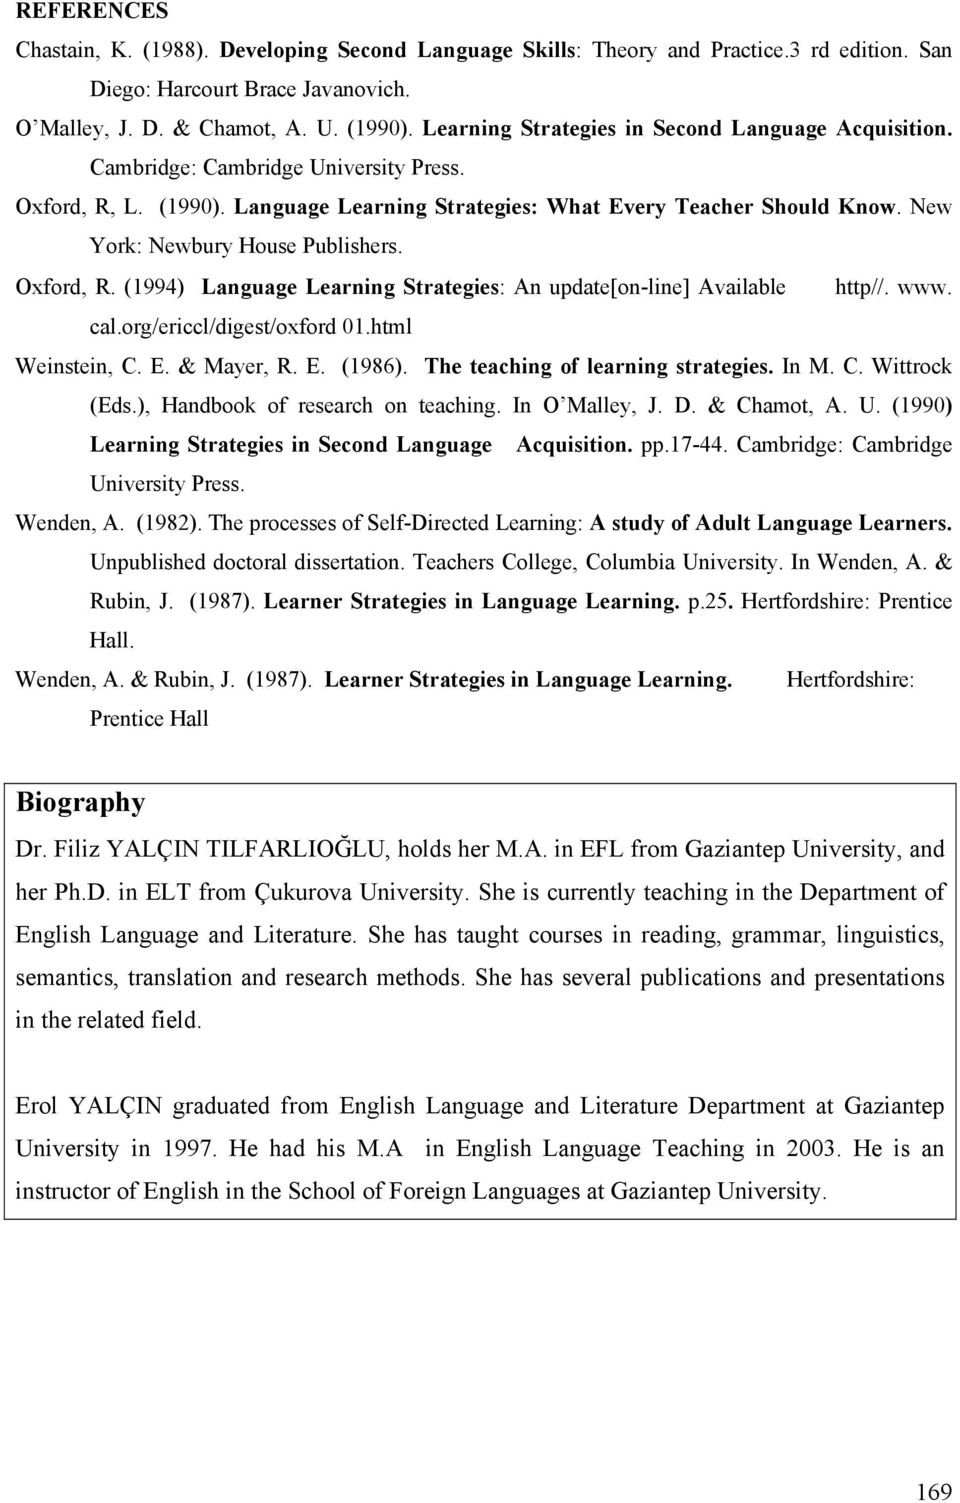 New York: Newbury House Publishers. Oxford, R. (1994) Language Learning Strategies: An update[on-line] Available http//. www. cal.org/ericcl/digest/oxford 01.html Weinstein, C. E. & Mayer, R. E. (1986).